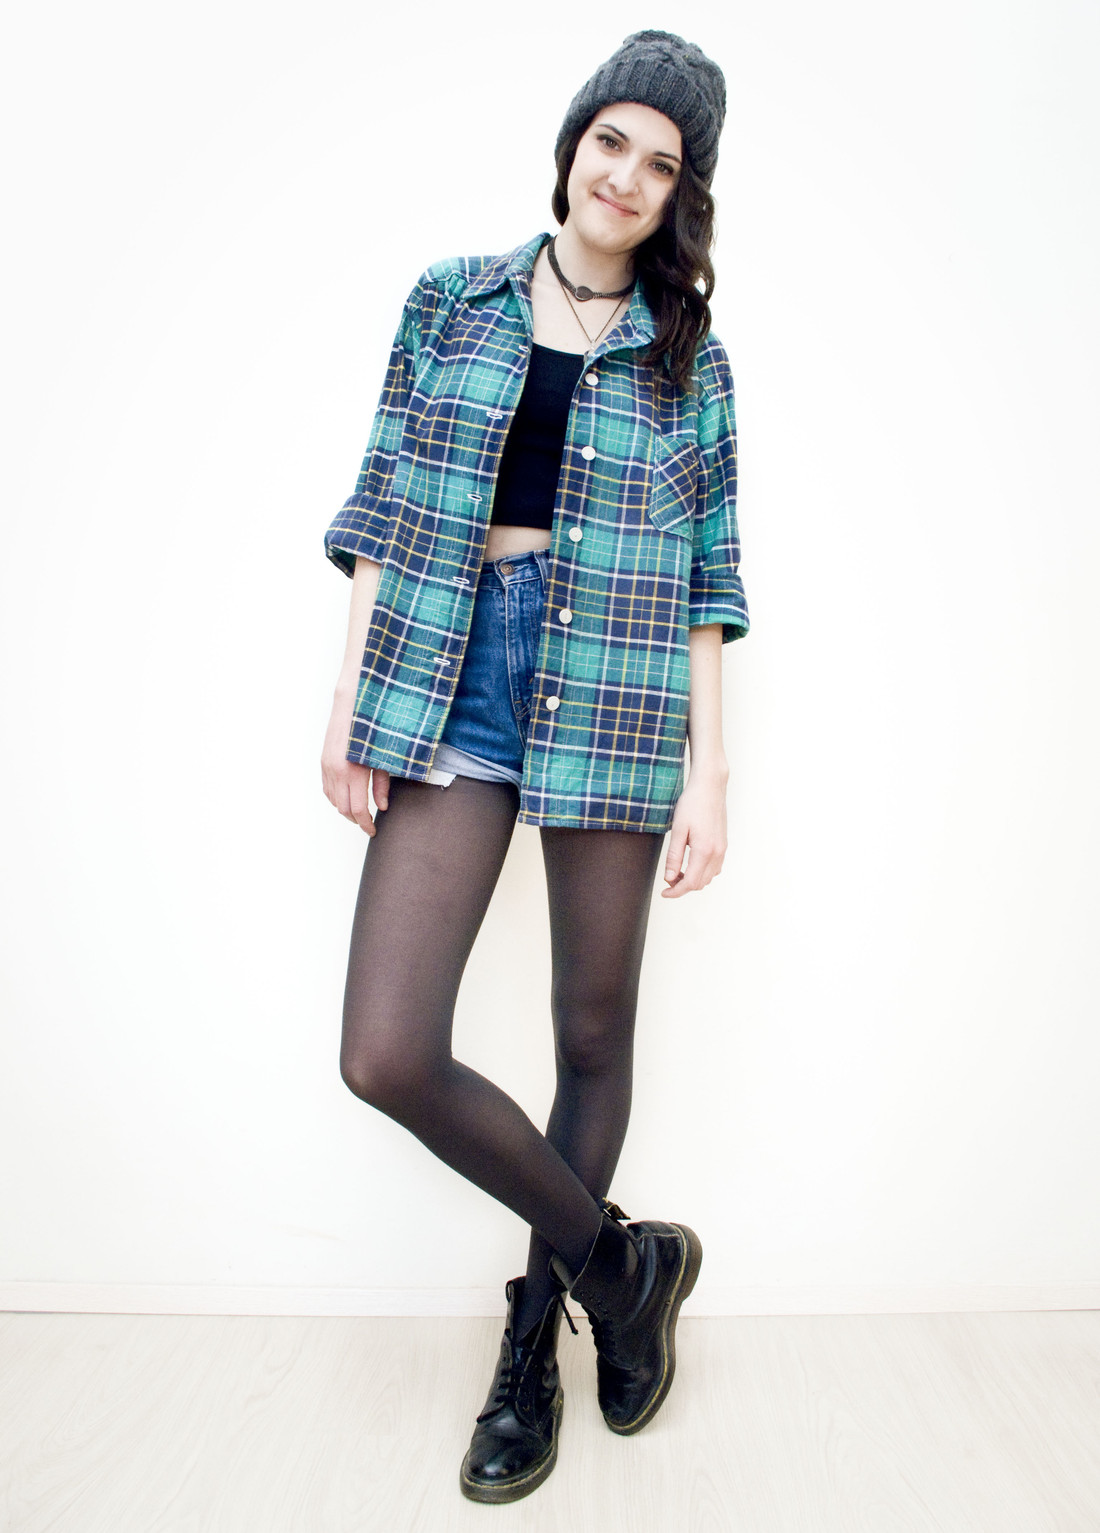 Green plaid shirt - Pop Sick Vintage